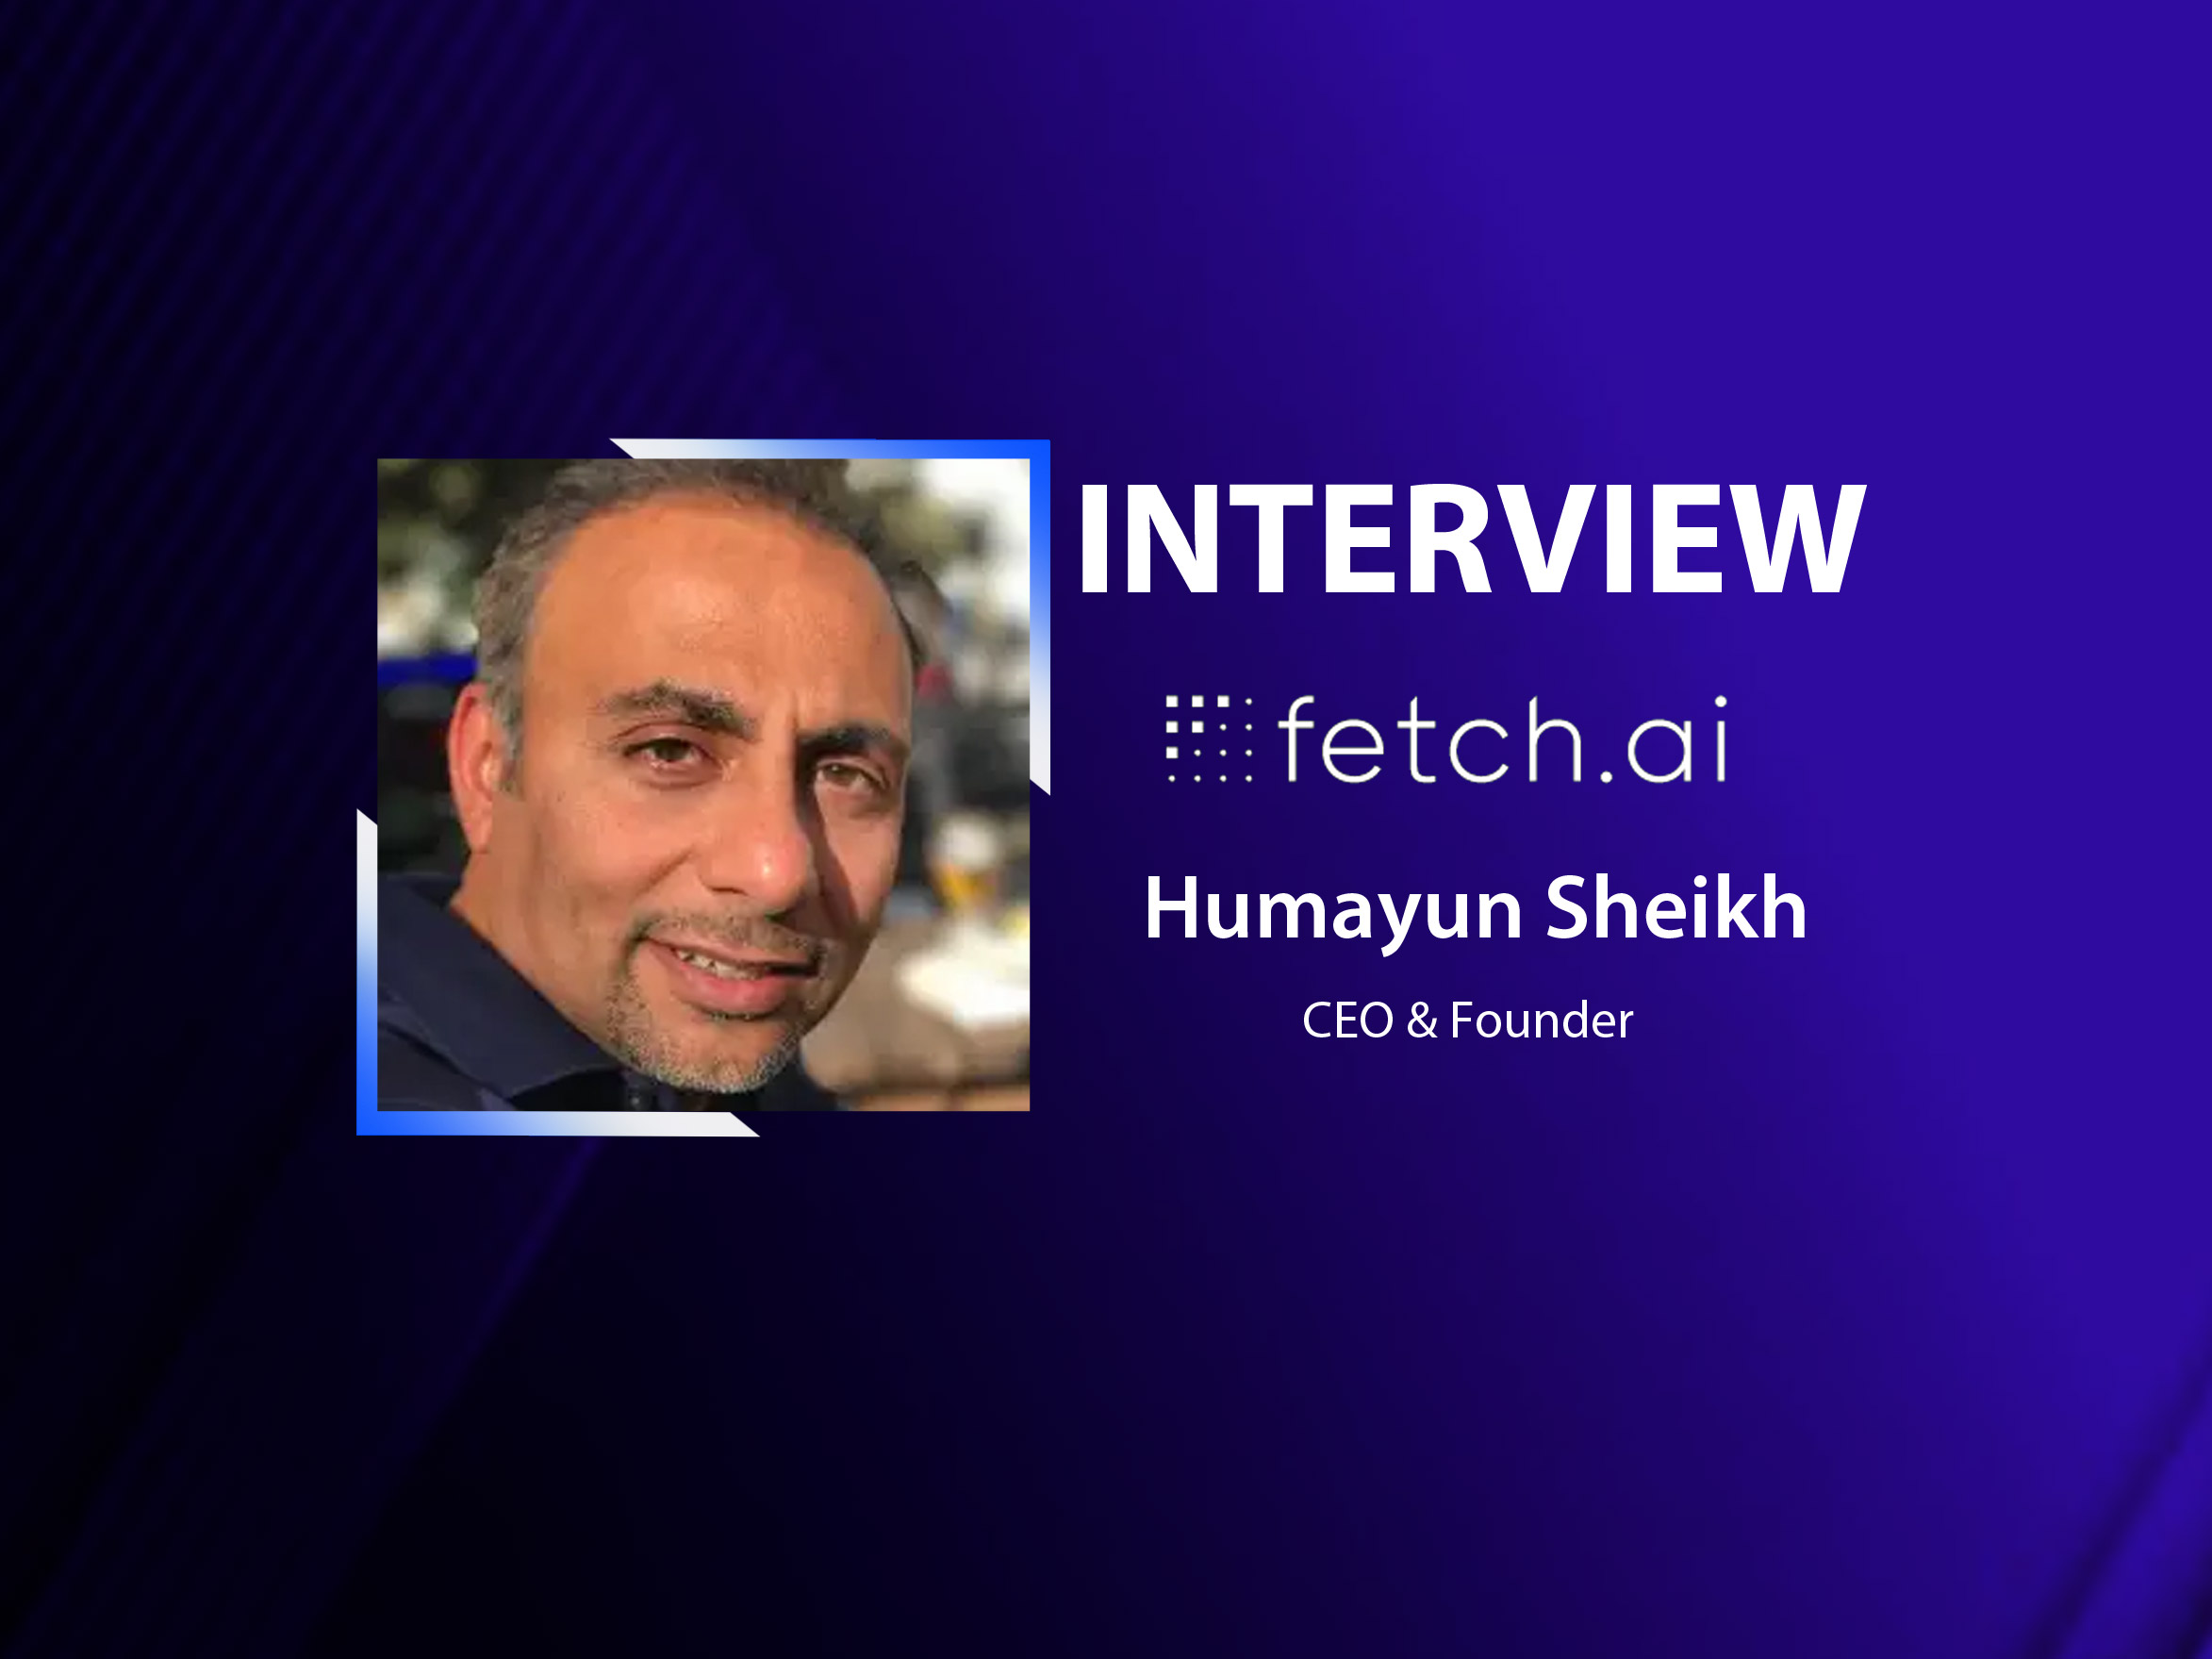 GlobalFintechSeries Interview with Humayun Sheikh, CEO and Founder at Fetch.ai